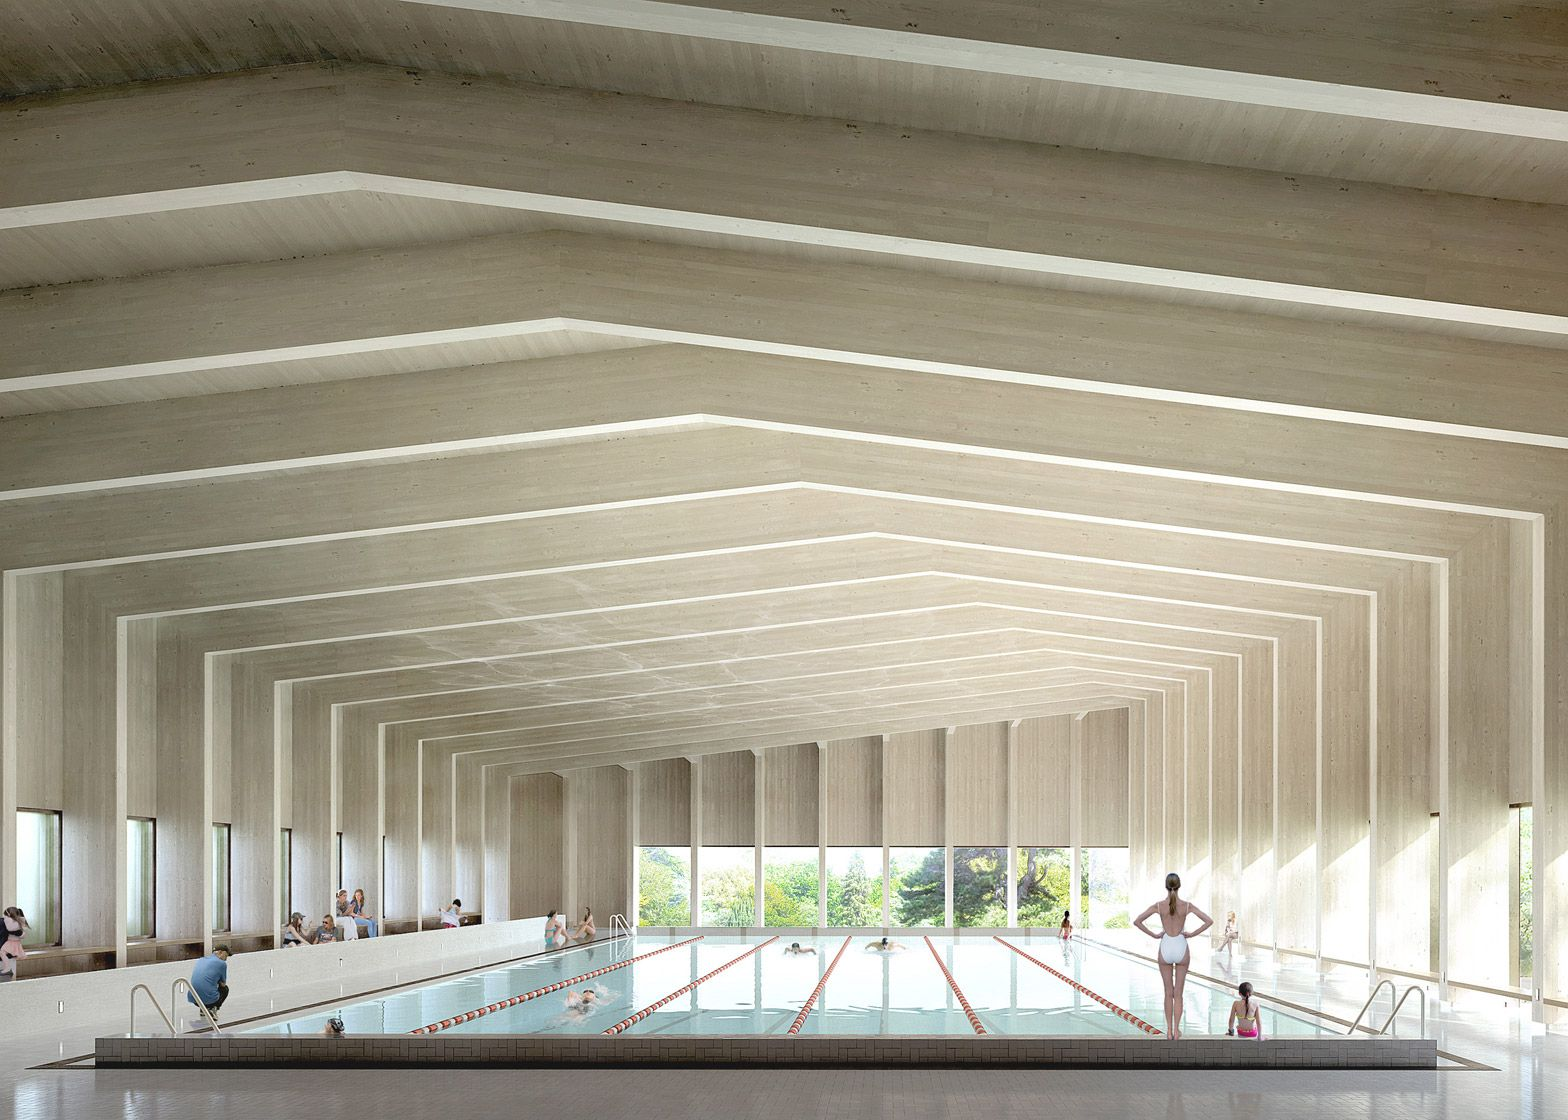 A Cross Laminated Timber Roof Covers This Six Lane